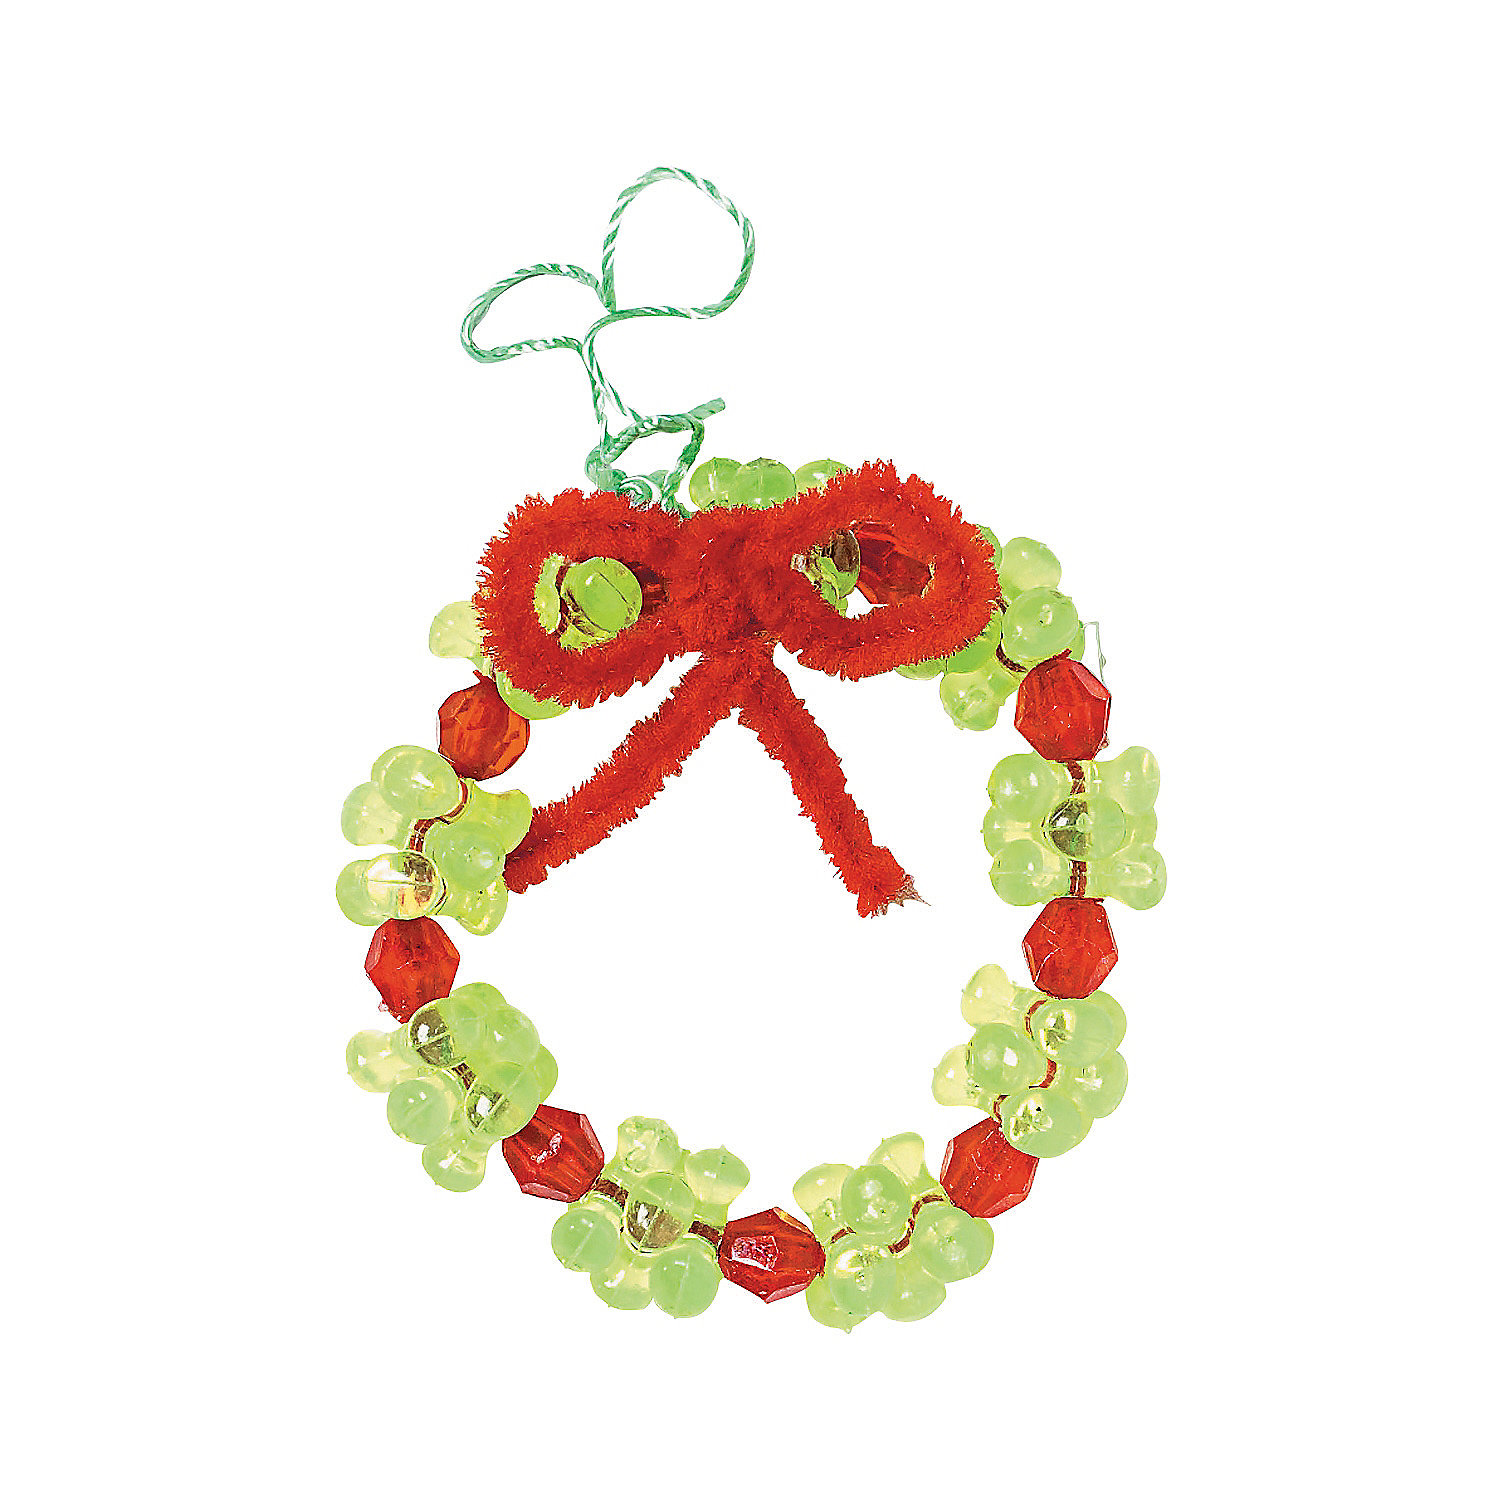 beaded wreath ornament craft kit trading